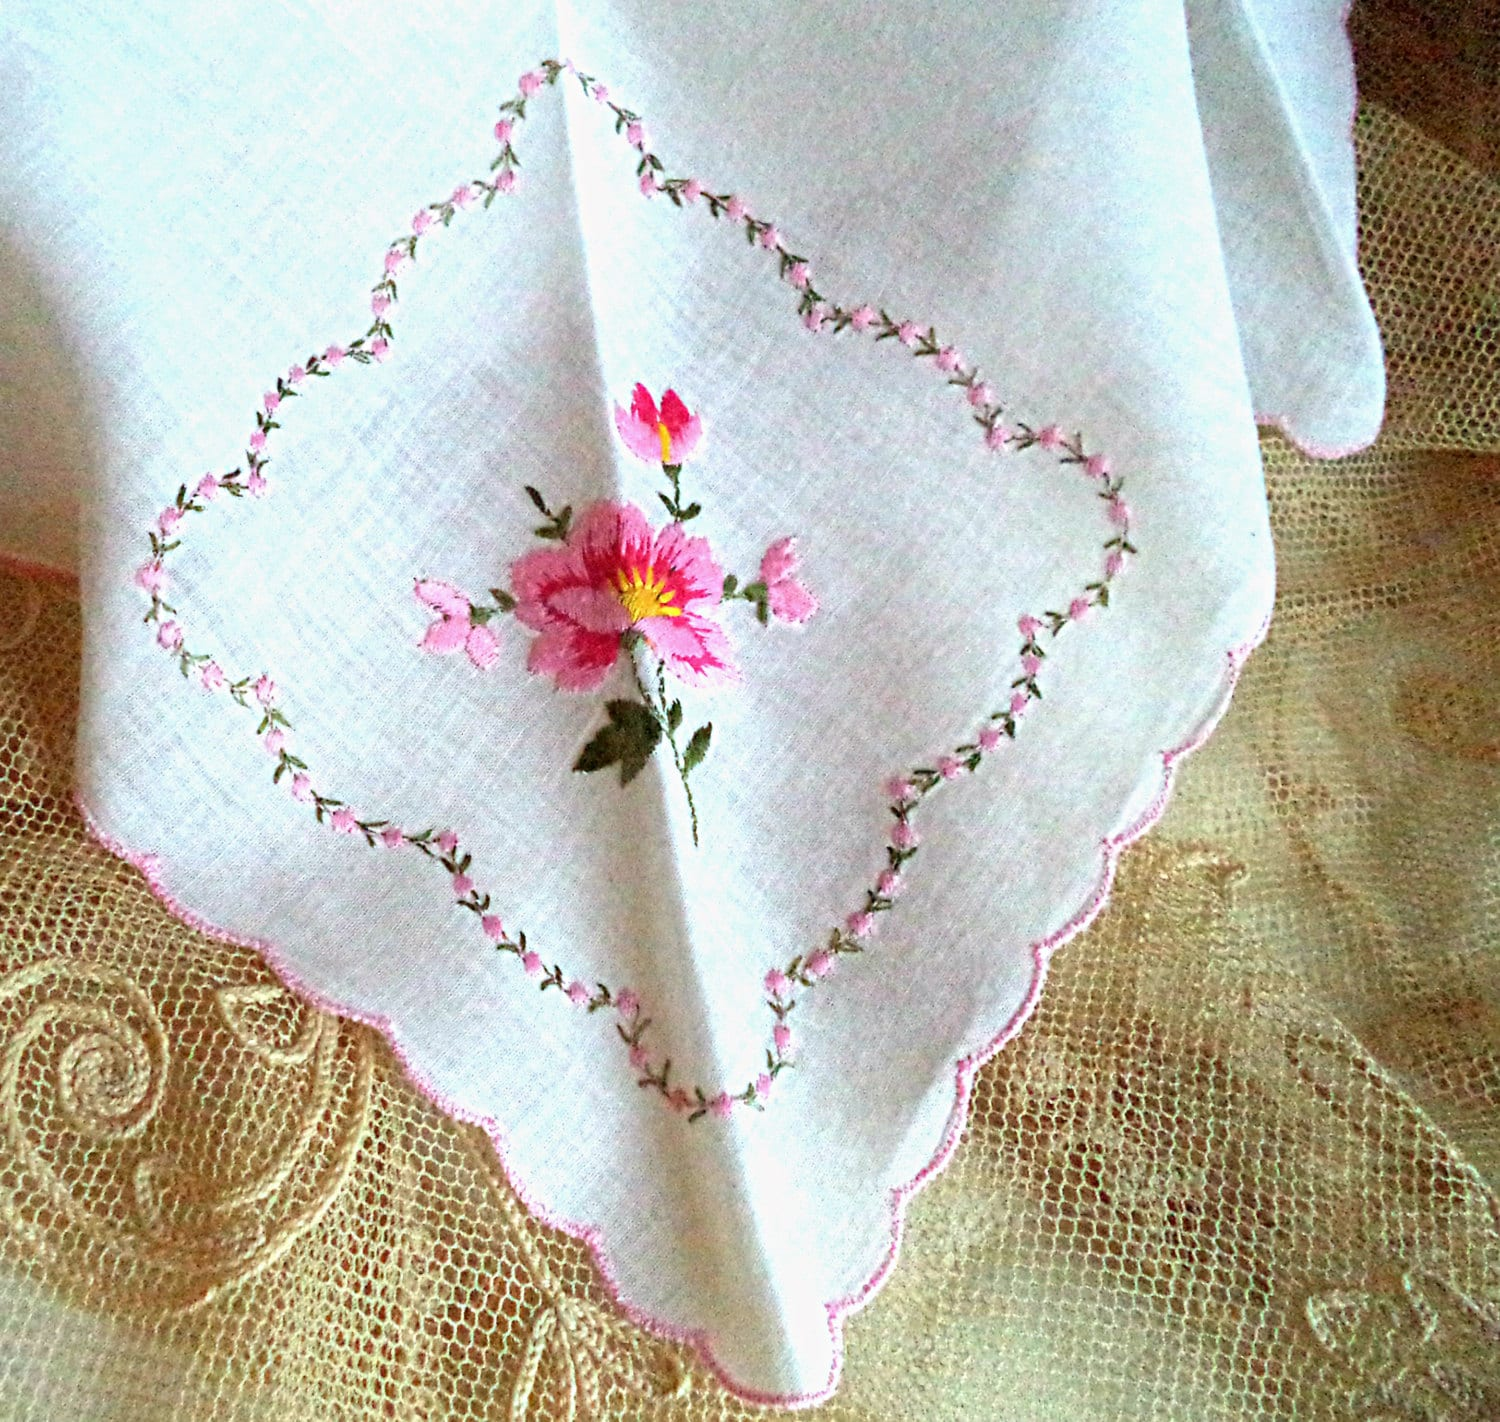 S white handkerchief pink rose floral embroidery